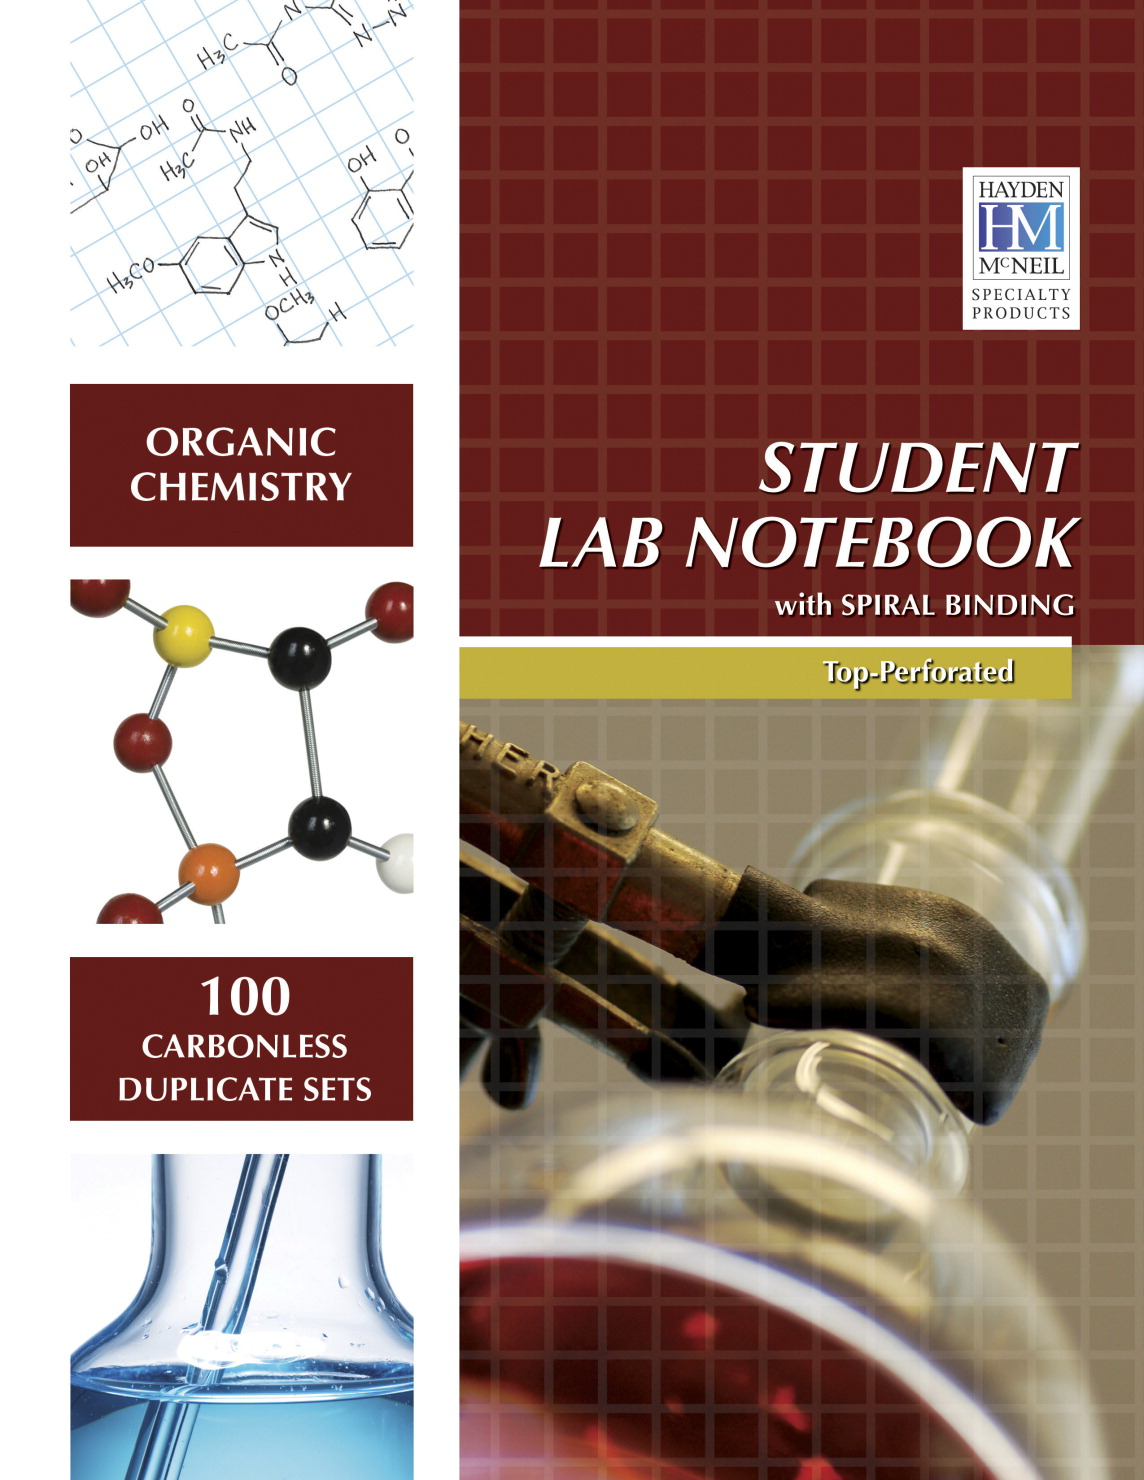 organic chemistry 1 lab final Une organic chemistry lab i is designed to meet the organic chemistry prerequisite for individuals applying for admission to health profession programs the laboratories are at a level for introductory level college organic chemistry lab i courses for pre-health science majors at challenging institutions.